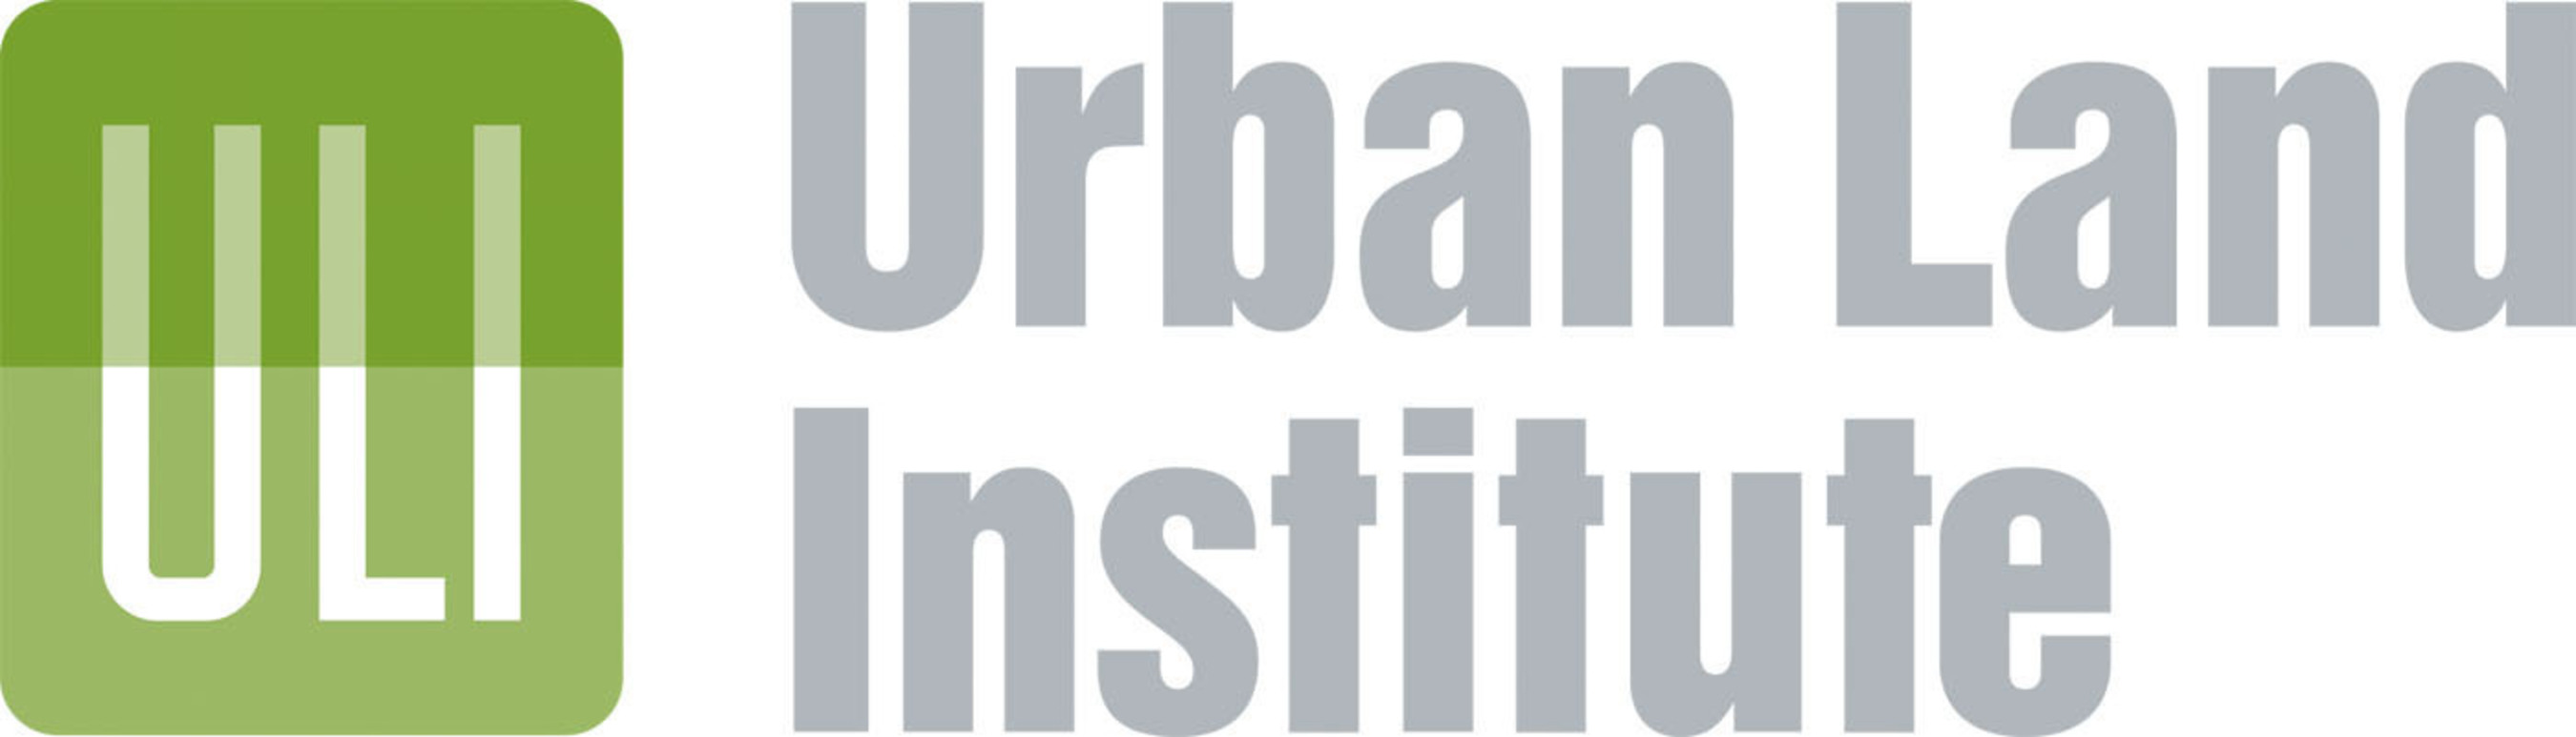 Urban Land Institute Logo.